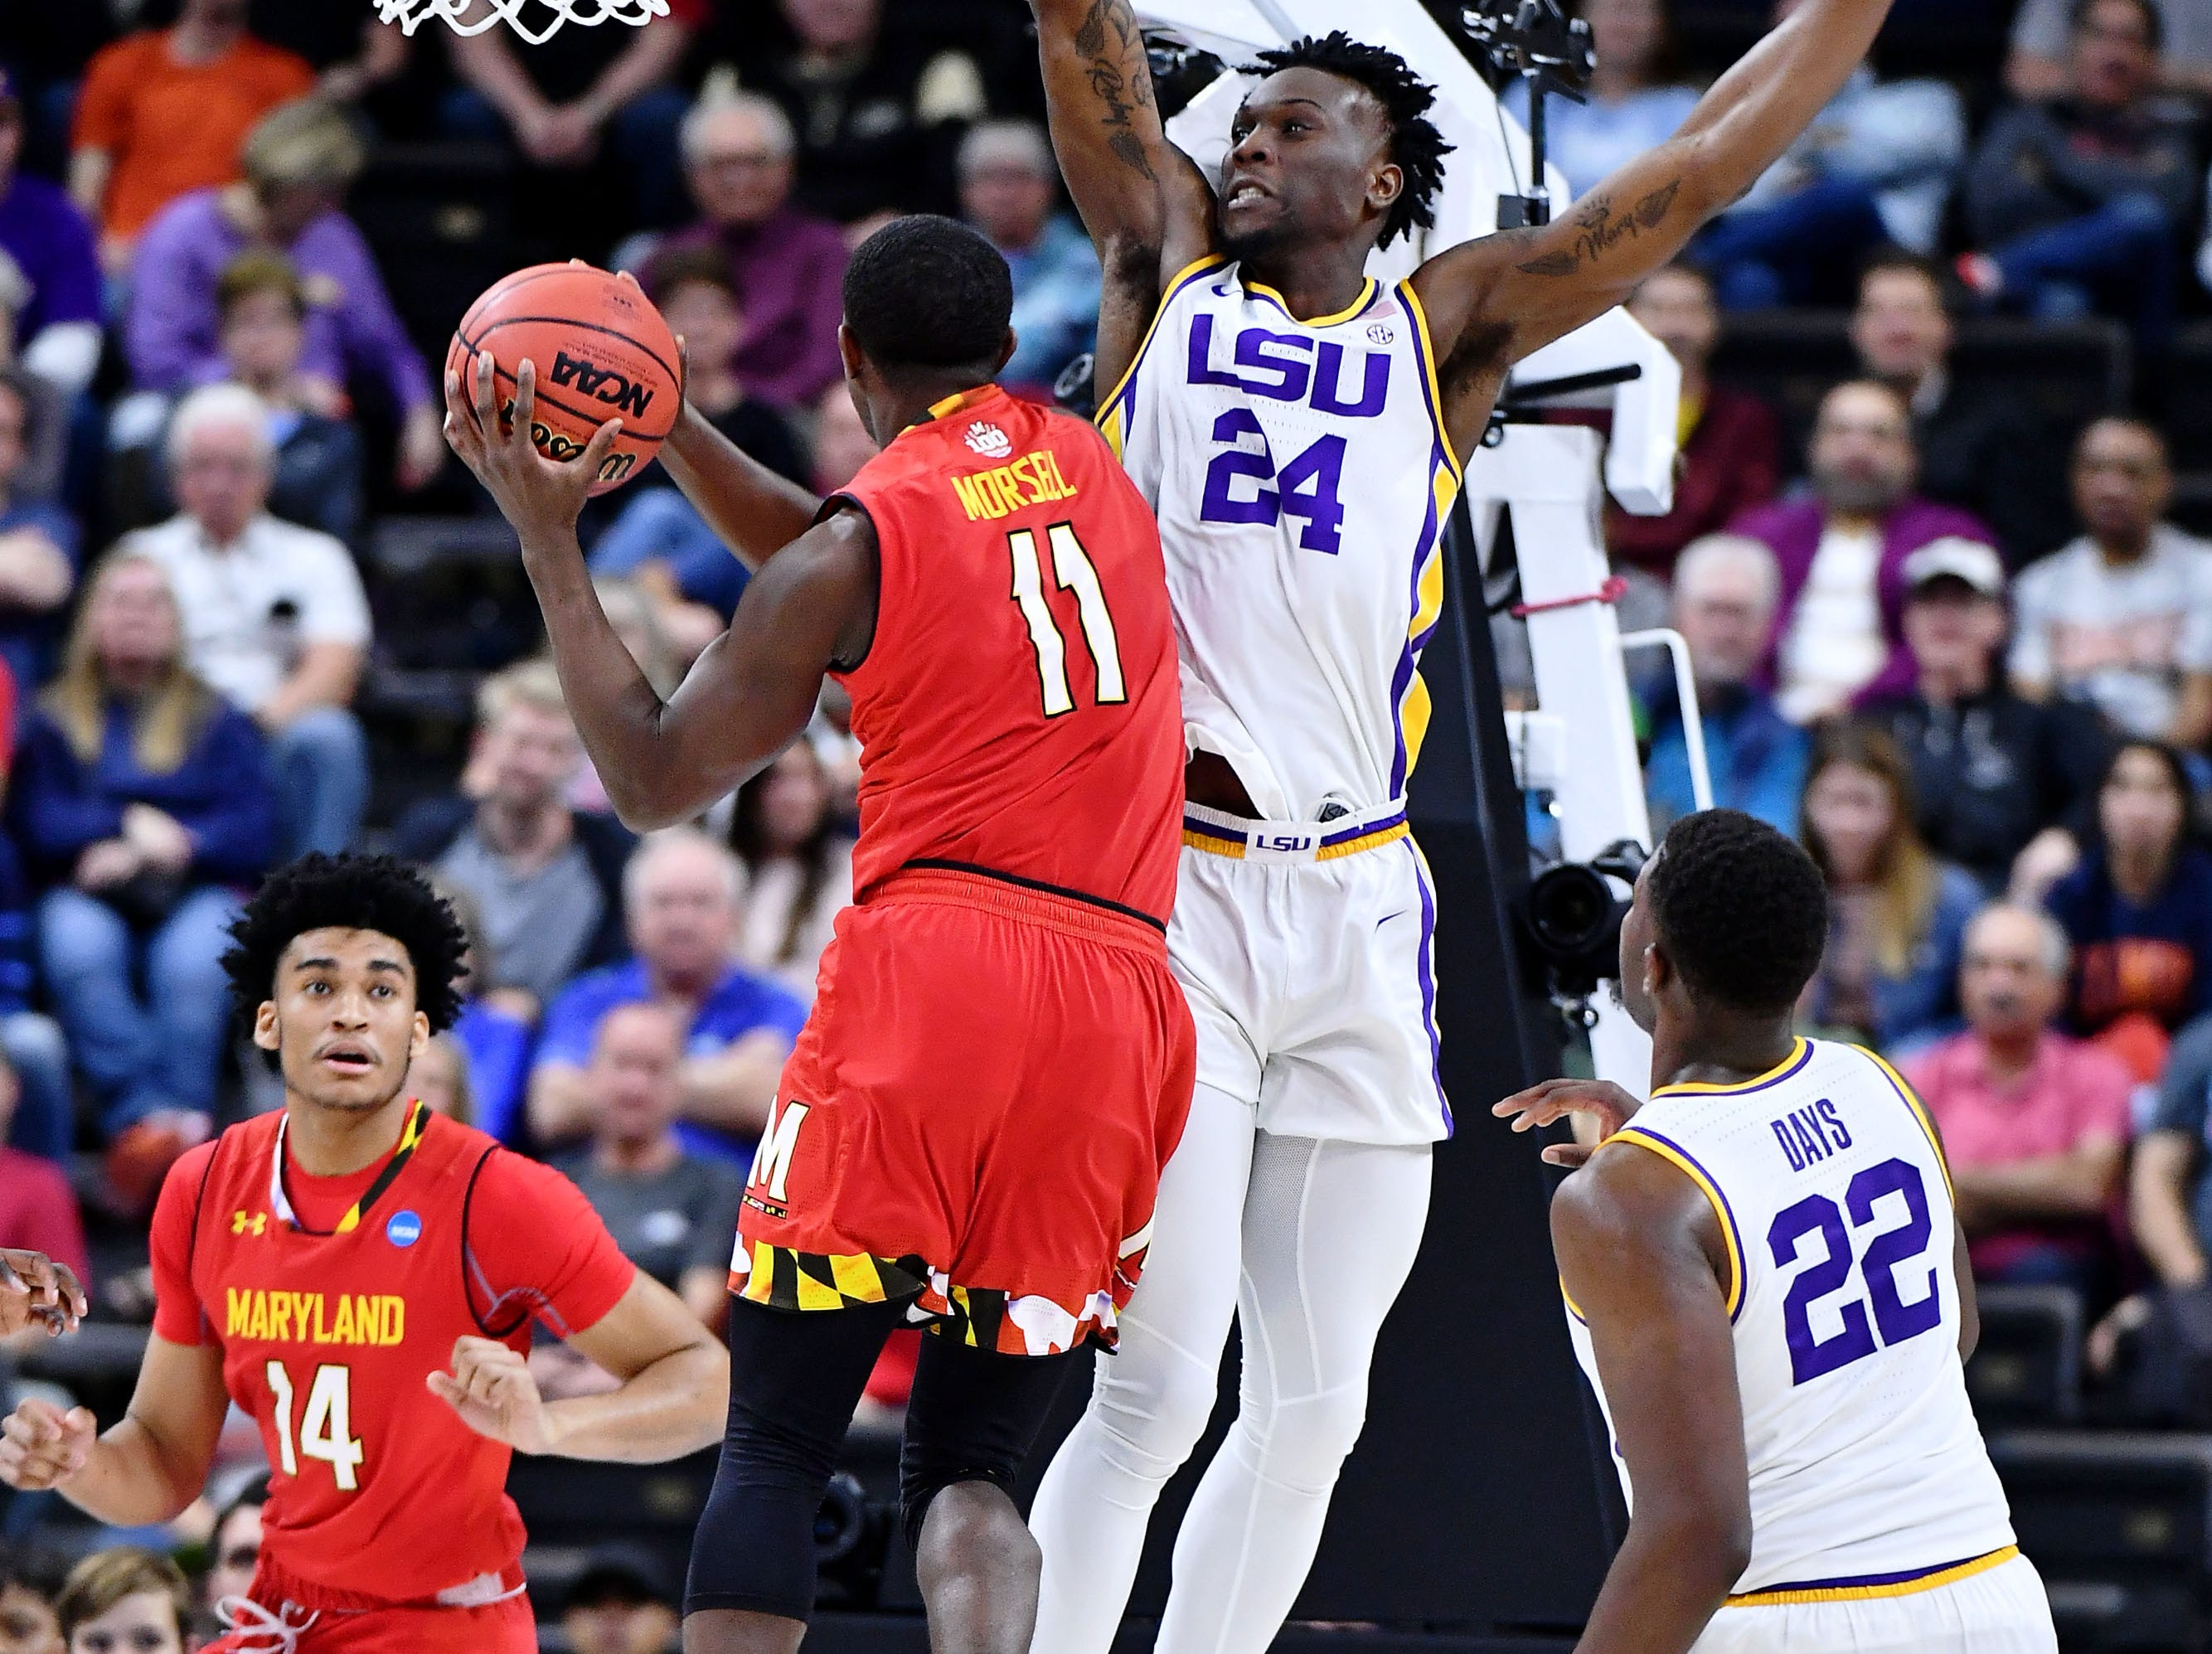 LSU Tigers forward Emmitt Williams jumps up to block Maryland Terrapins guard Darryl Morsell during the first half in the second round of the 2019 NCAA Tournament at Jacksonville Veterans Memorial Arena.